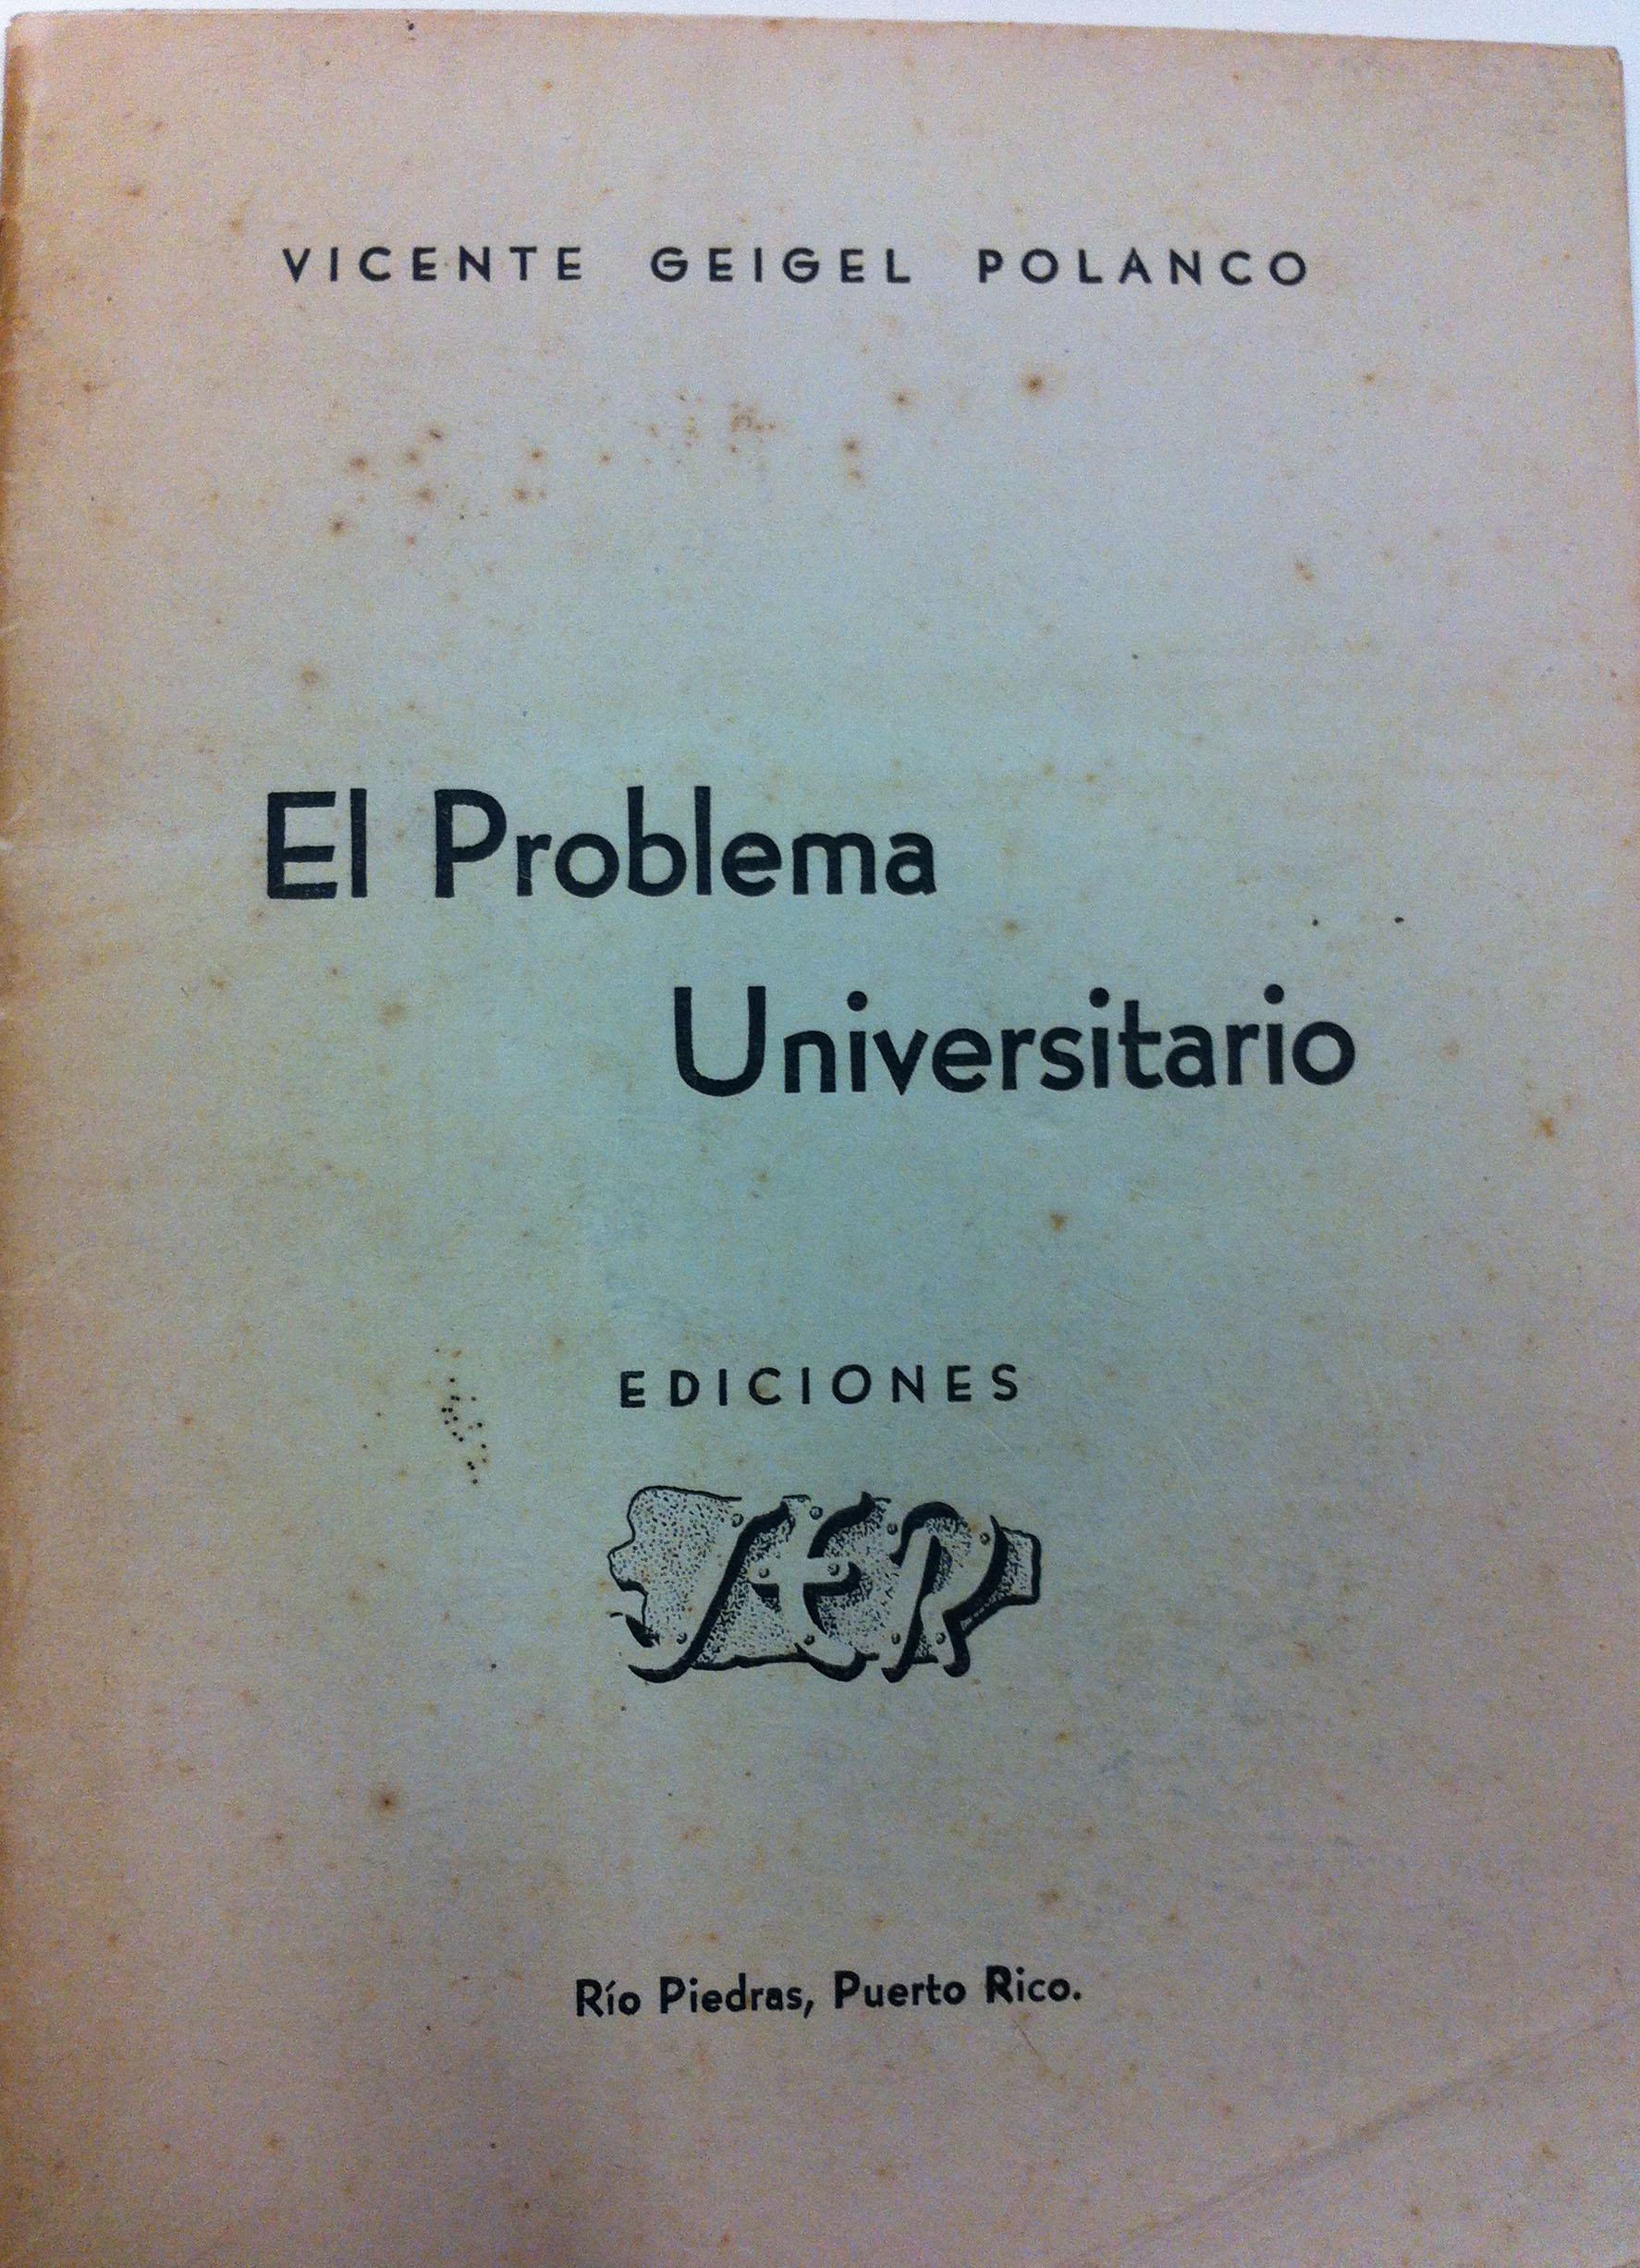 El Problema Universitario by Vicente Géigel Polanco